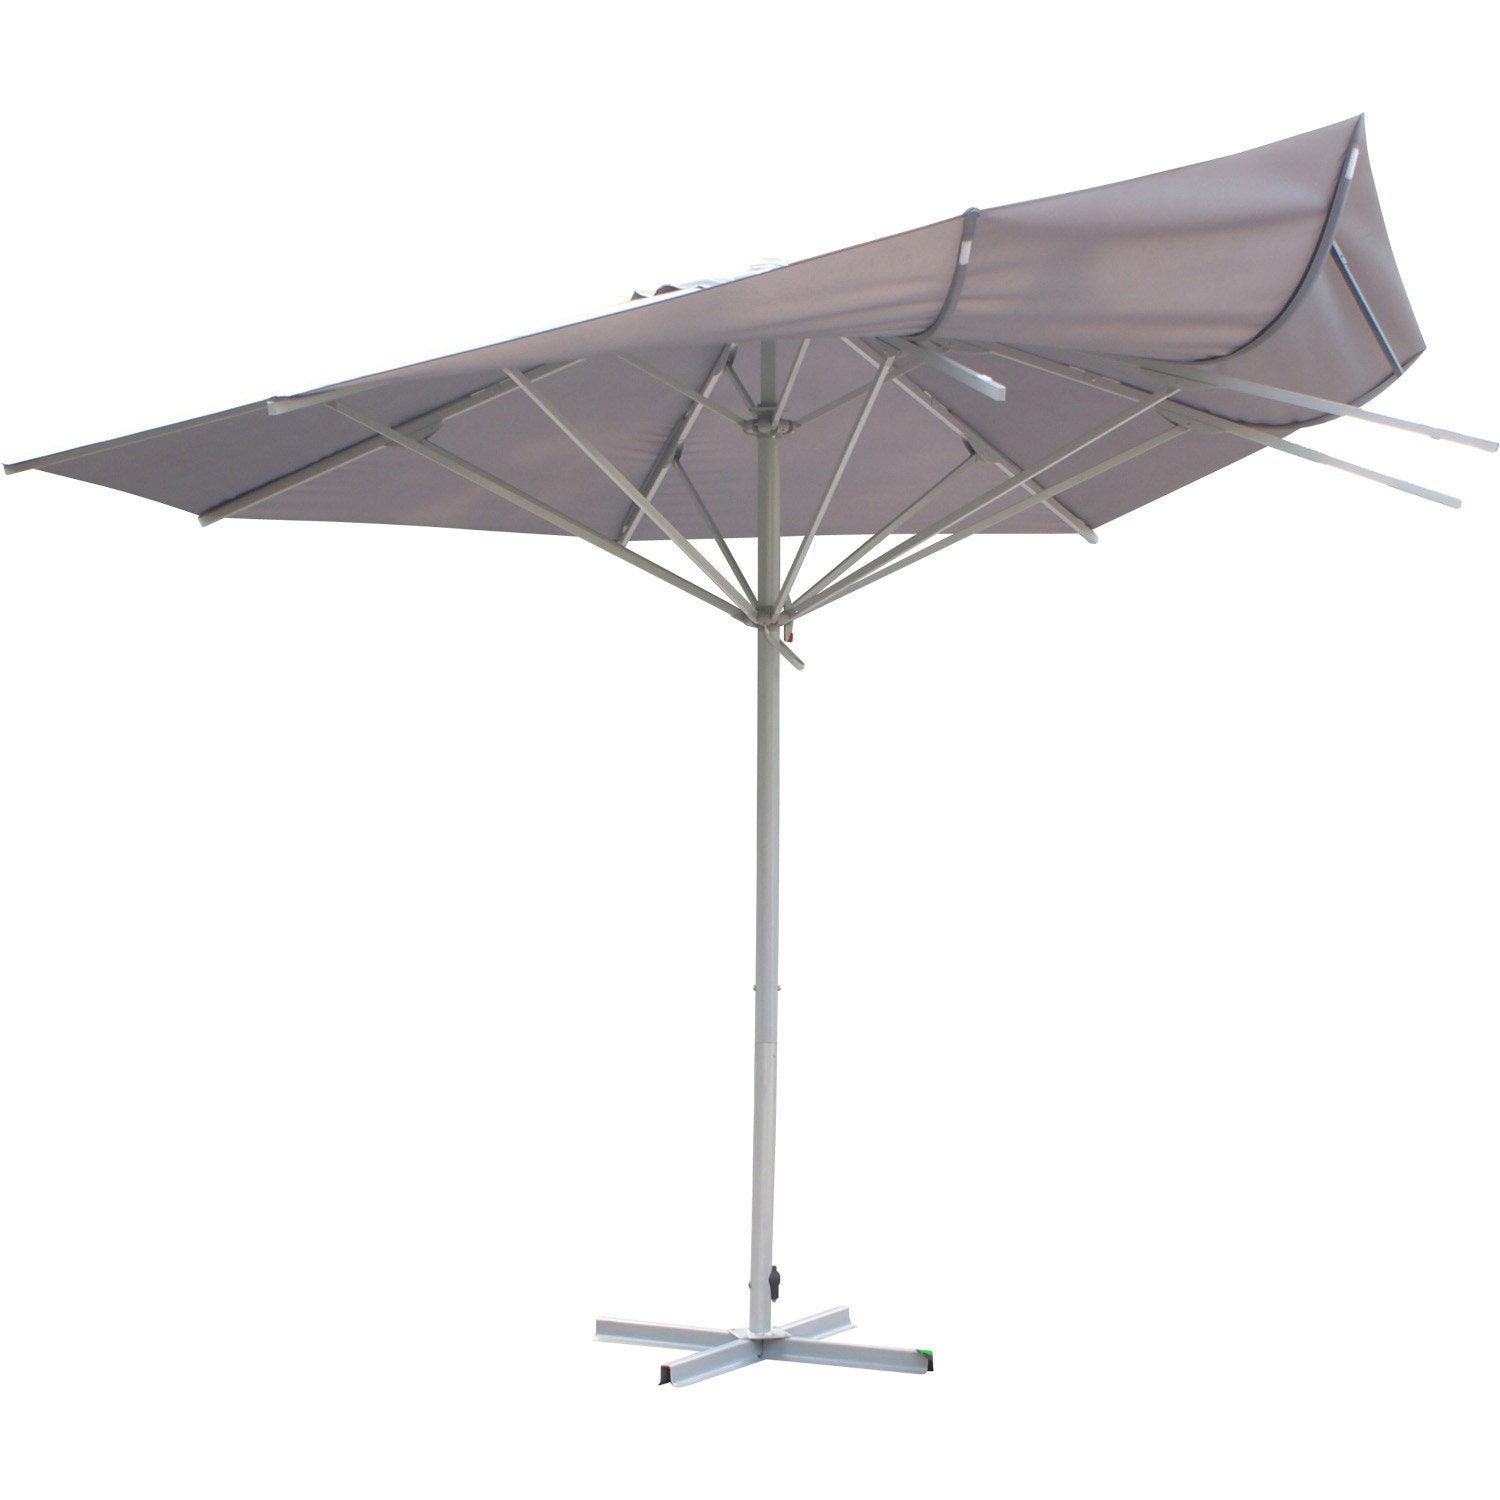 parasol de balcon leroy merlin elegant parasol dcor dombre avec mat dport permettant des plus. Black Bedroom Furniture Sets. Home Design Ideas